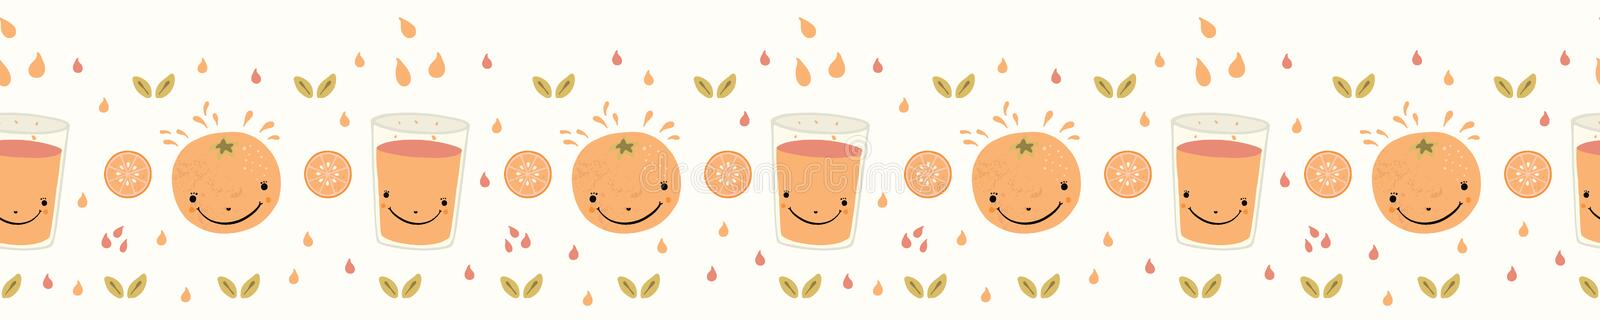 Cute whole orange citrus fruit cartoon with glass of juice. Hand drawn seamless vector border illustration. stock illustration